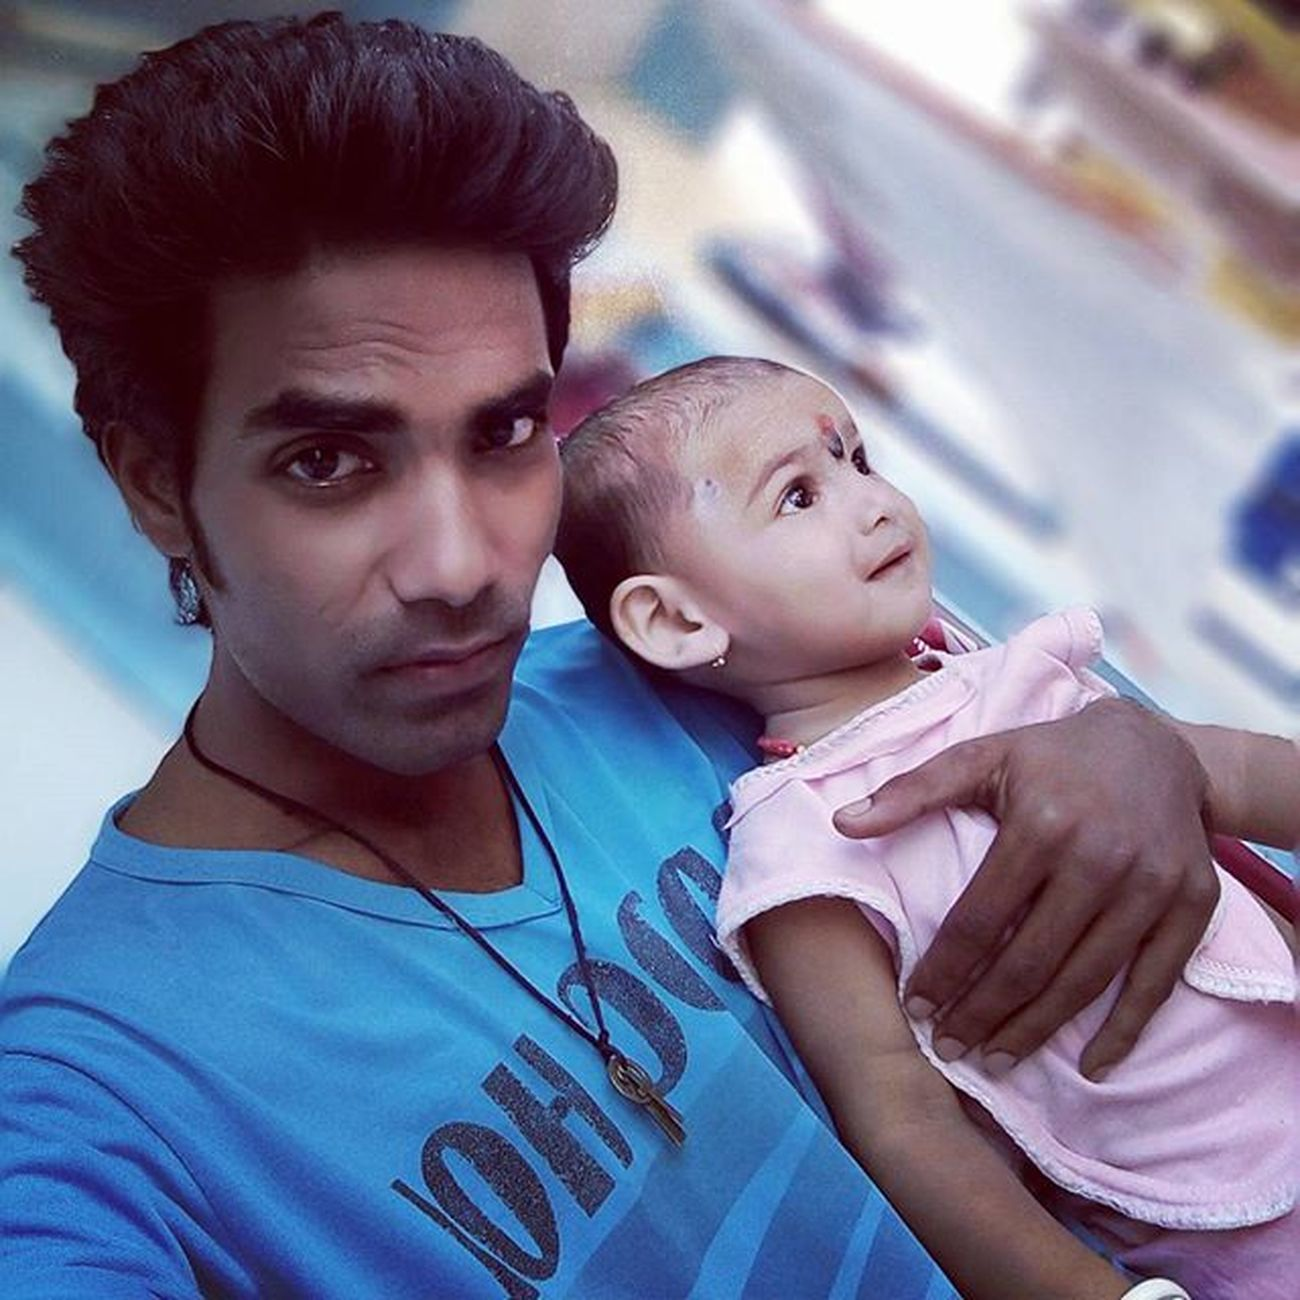 Robinraj Mrrob Mrcool Baby Baccha Smallbaby Awesome Cool Sundayclick Weekend Sunday Super Style Selfie Best